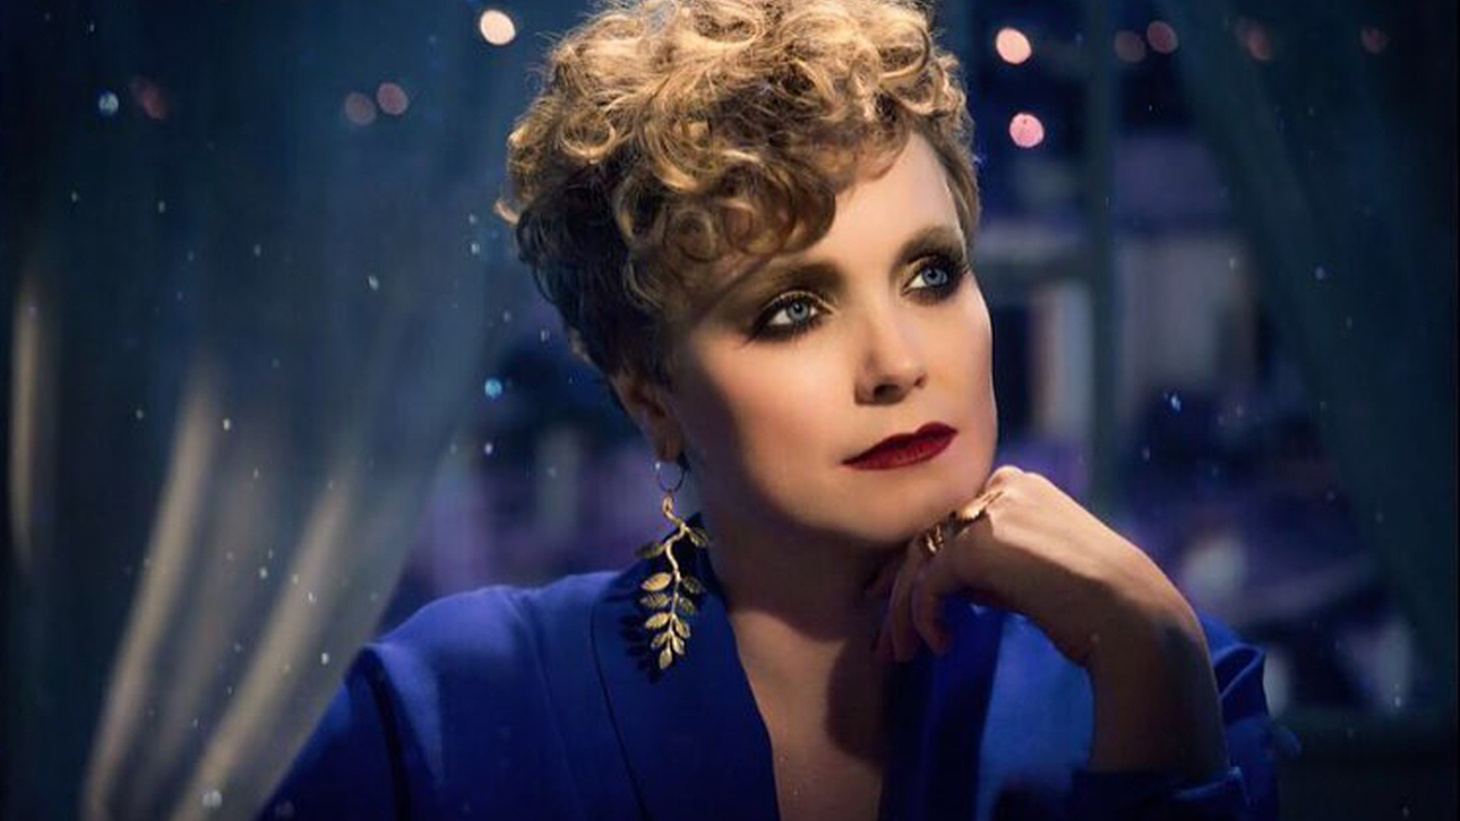 As we head into Valentine's Day, Norwegian singer Ane Brun reminds us of the most important thing...